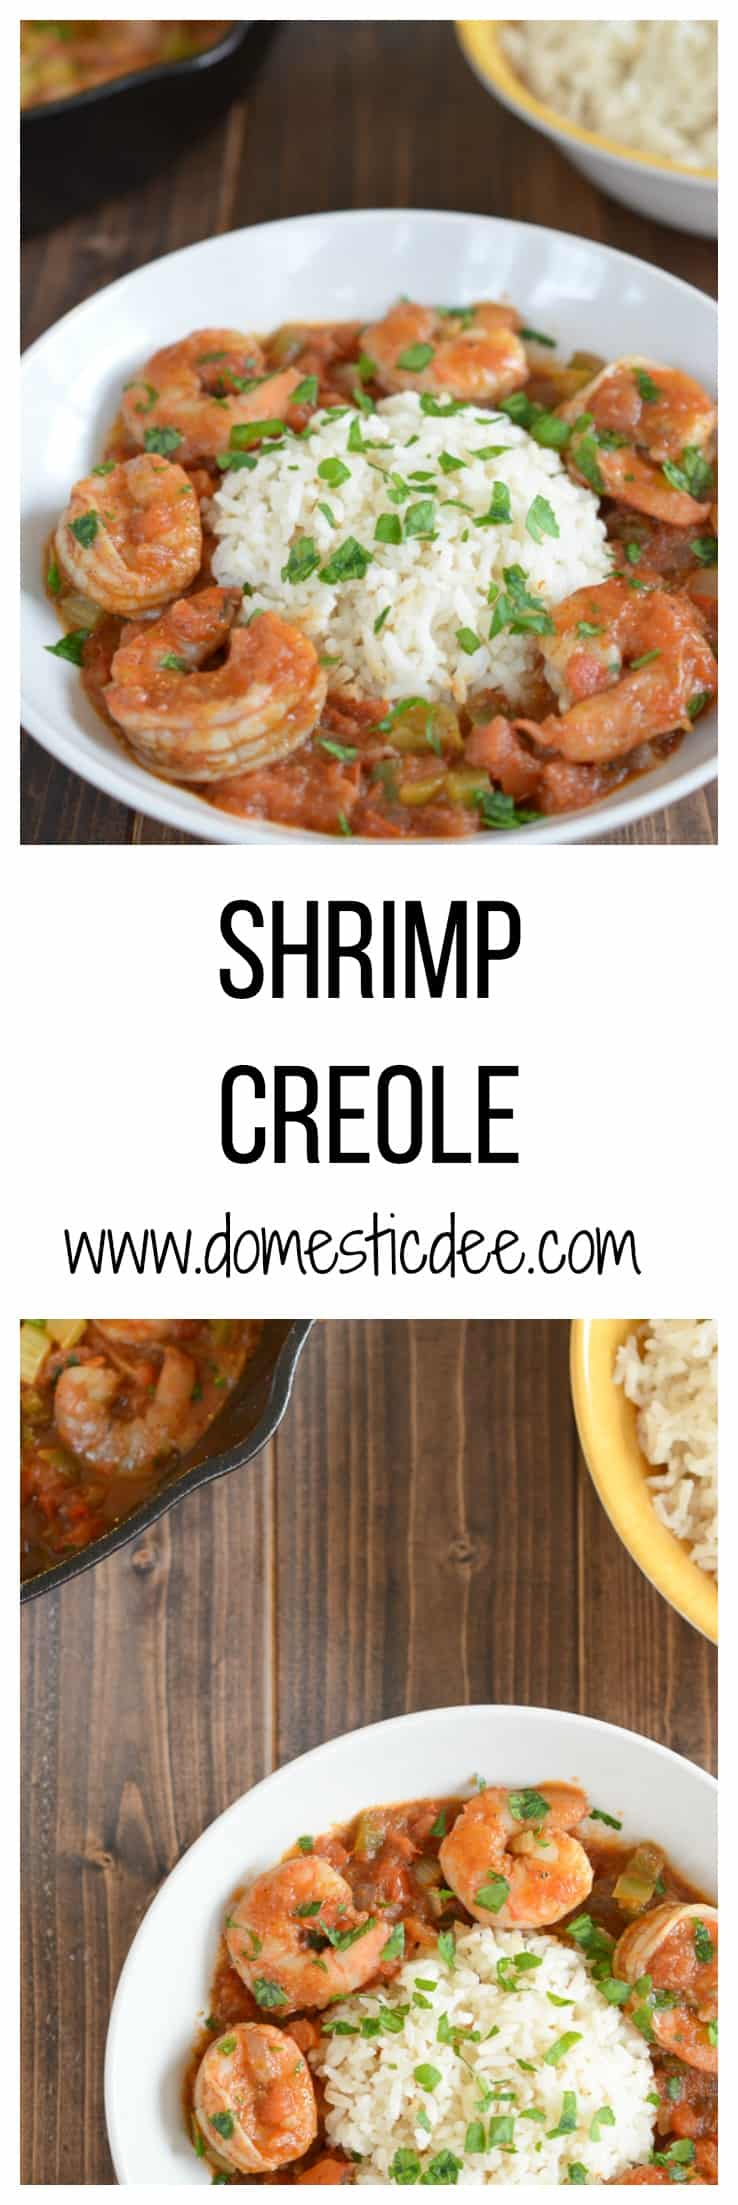 Easy Shrimp Creole Recipe- This easy shrimp creole recipe has jumbo shrimp, simmered in creole tomato sauce served over a steamy bed of rice. I www.domesticdee.com